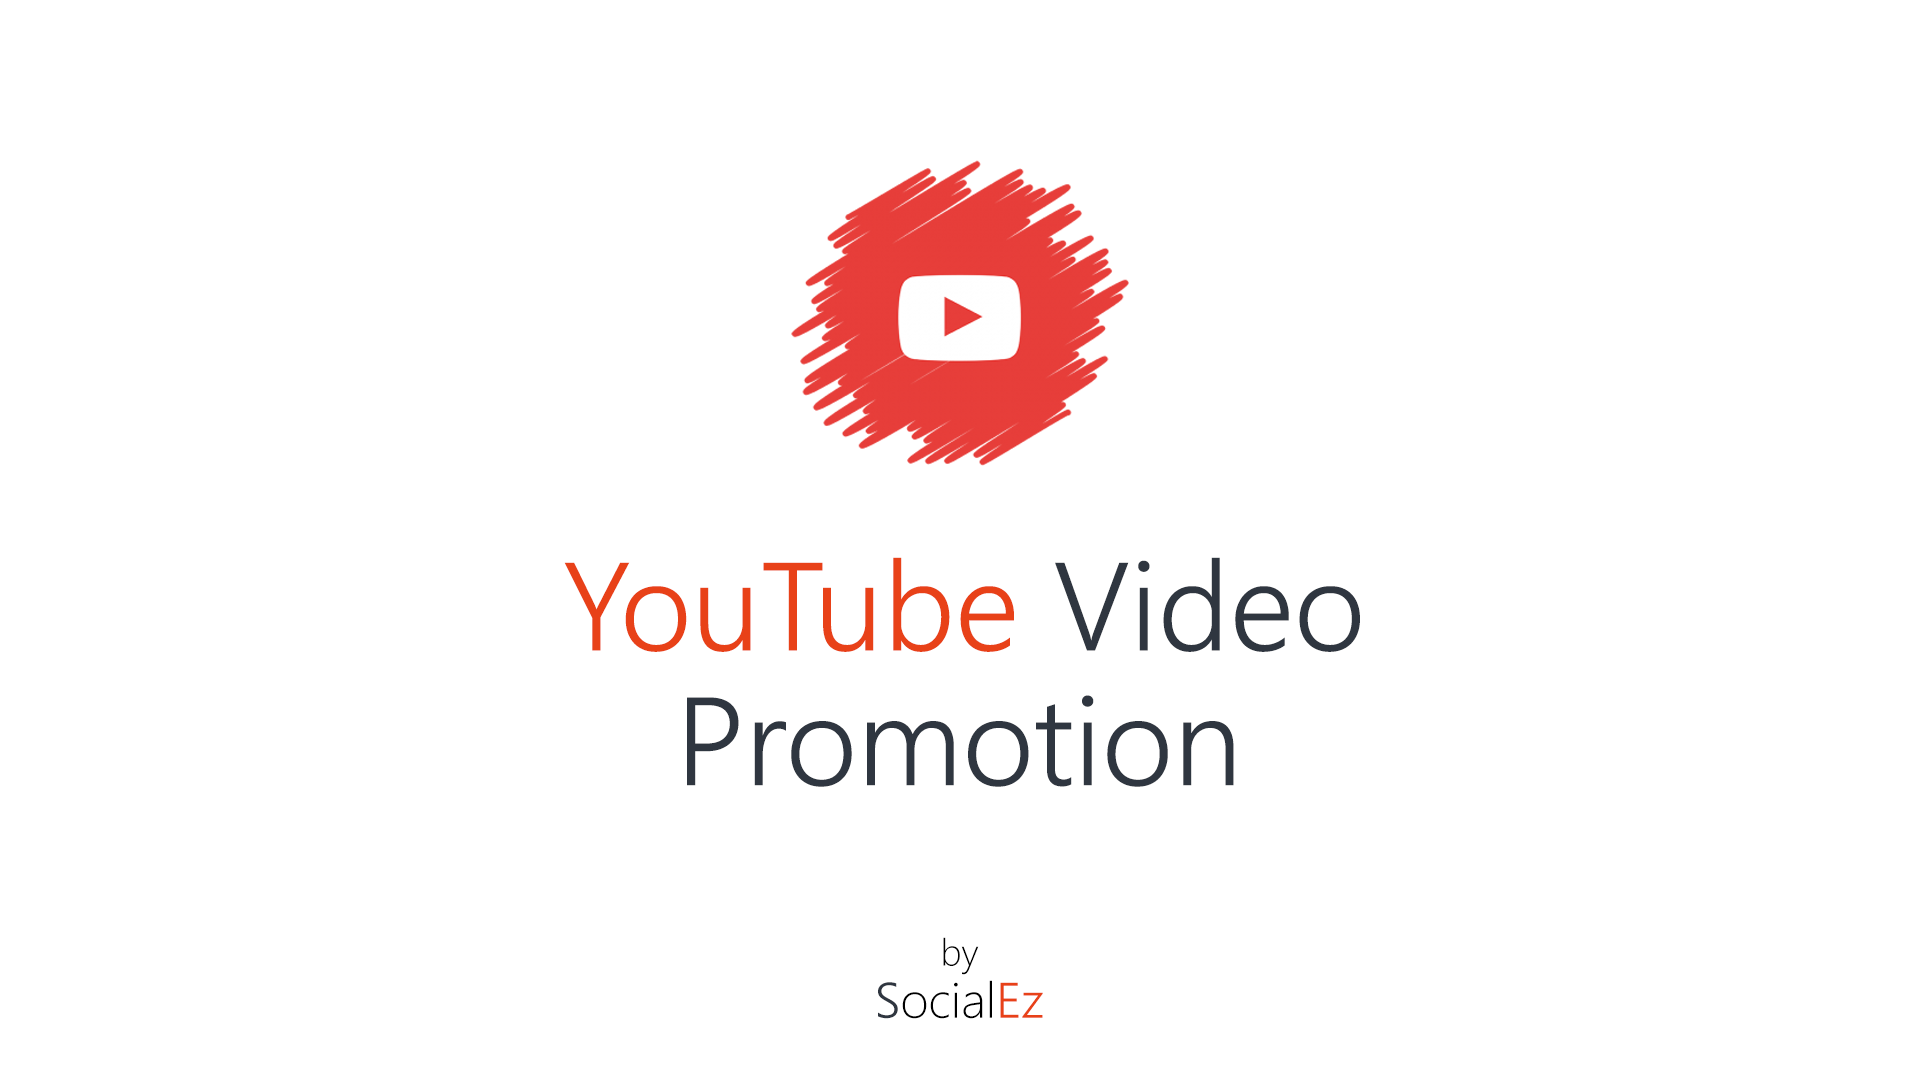 Youtube Video Promotion & Marketing Through Social Ads